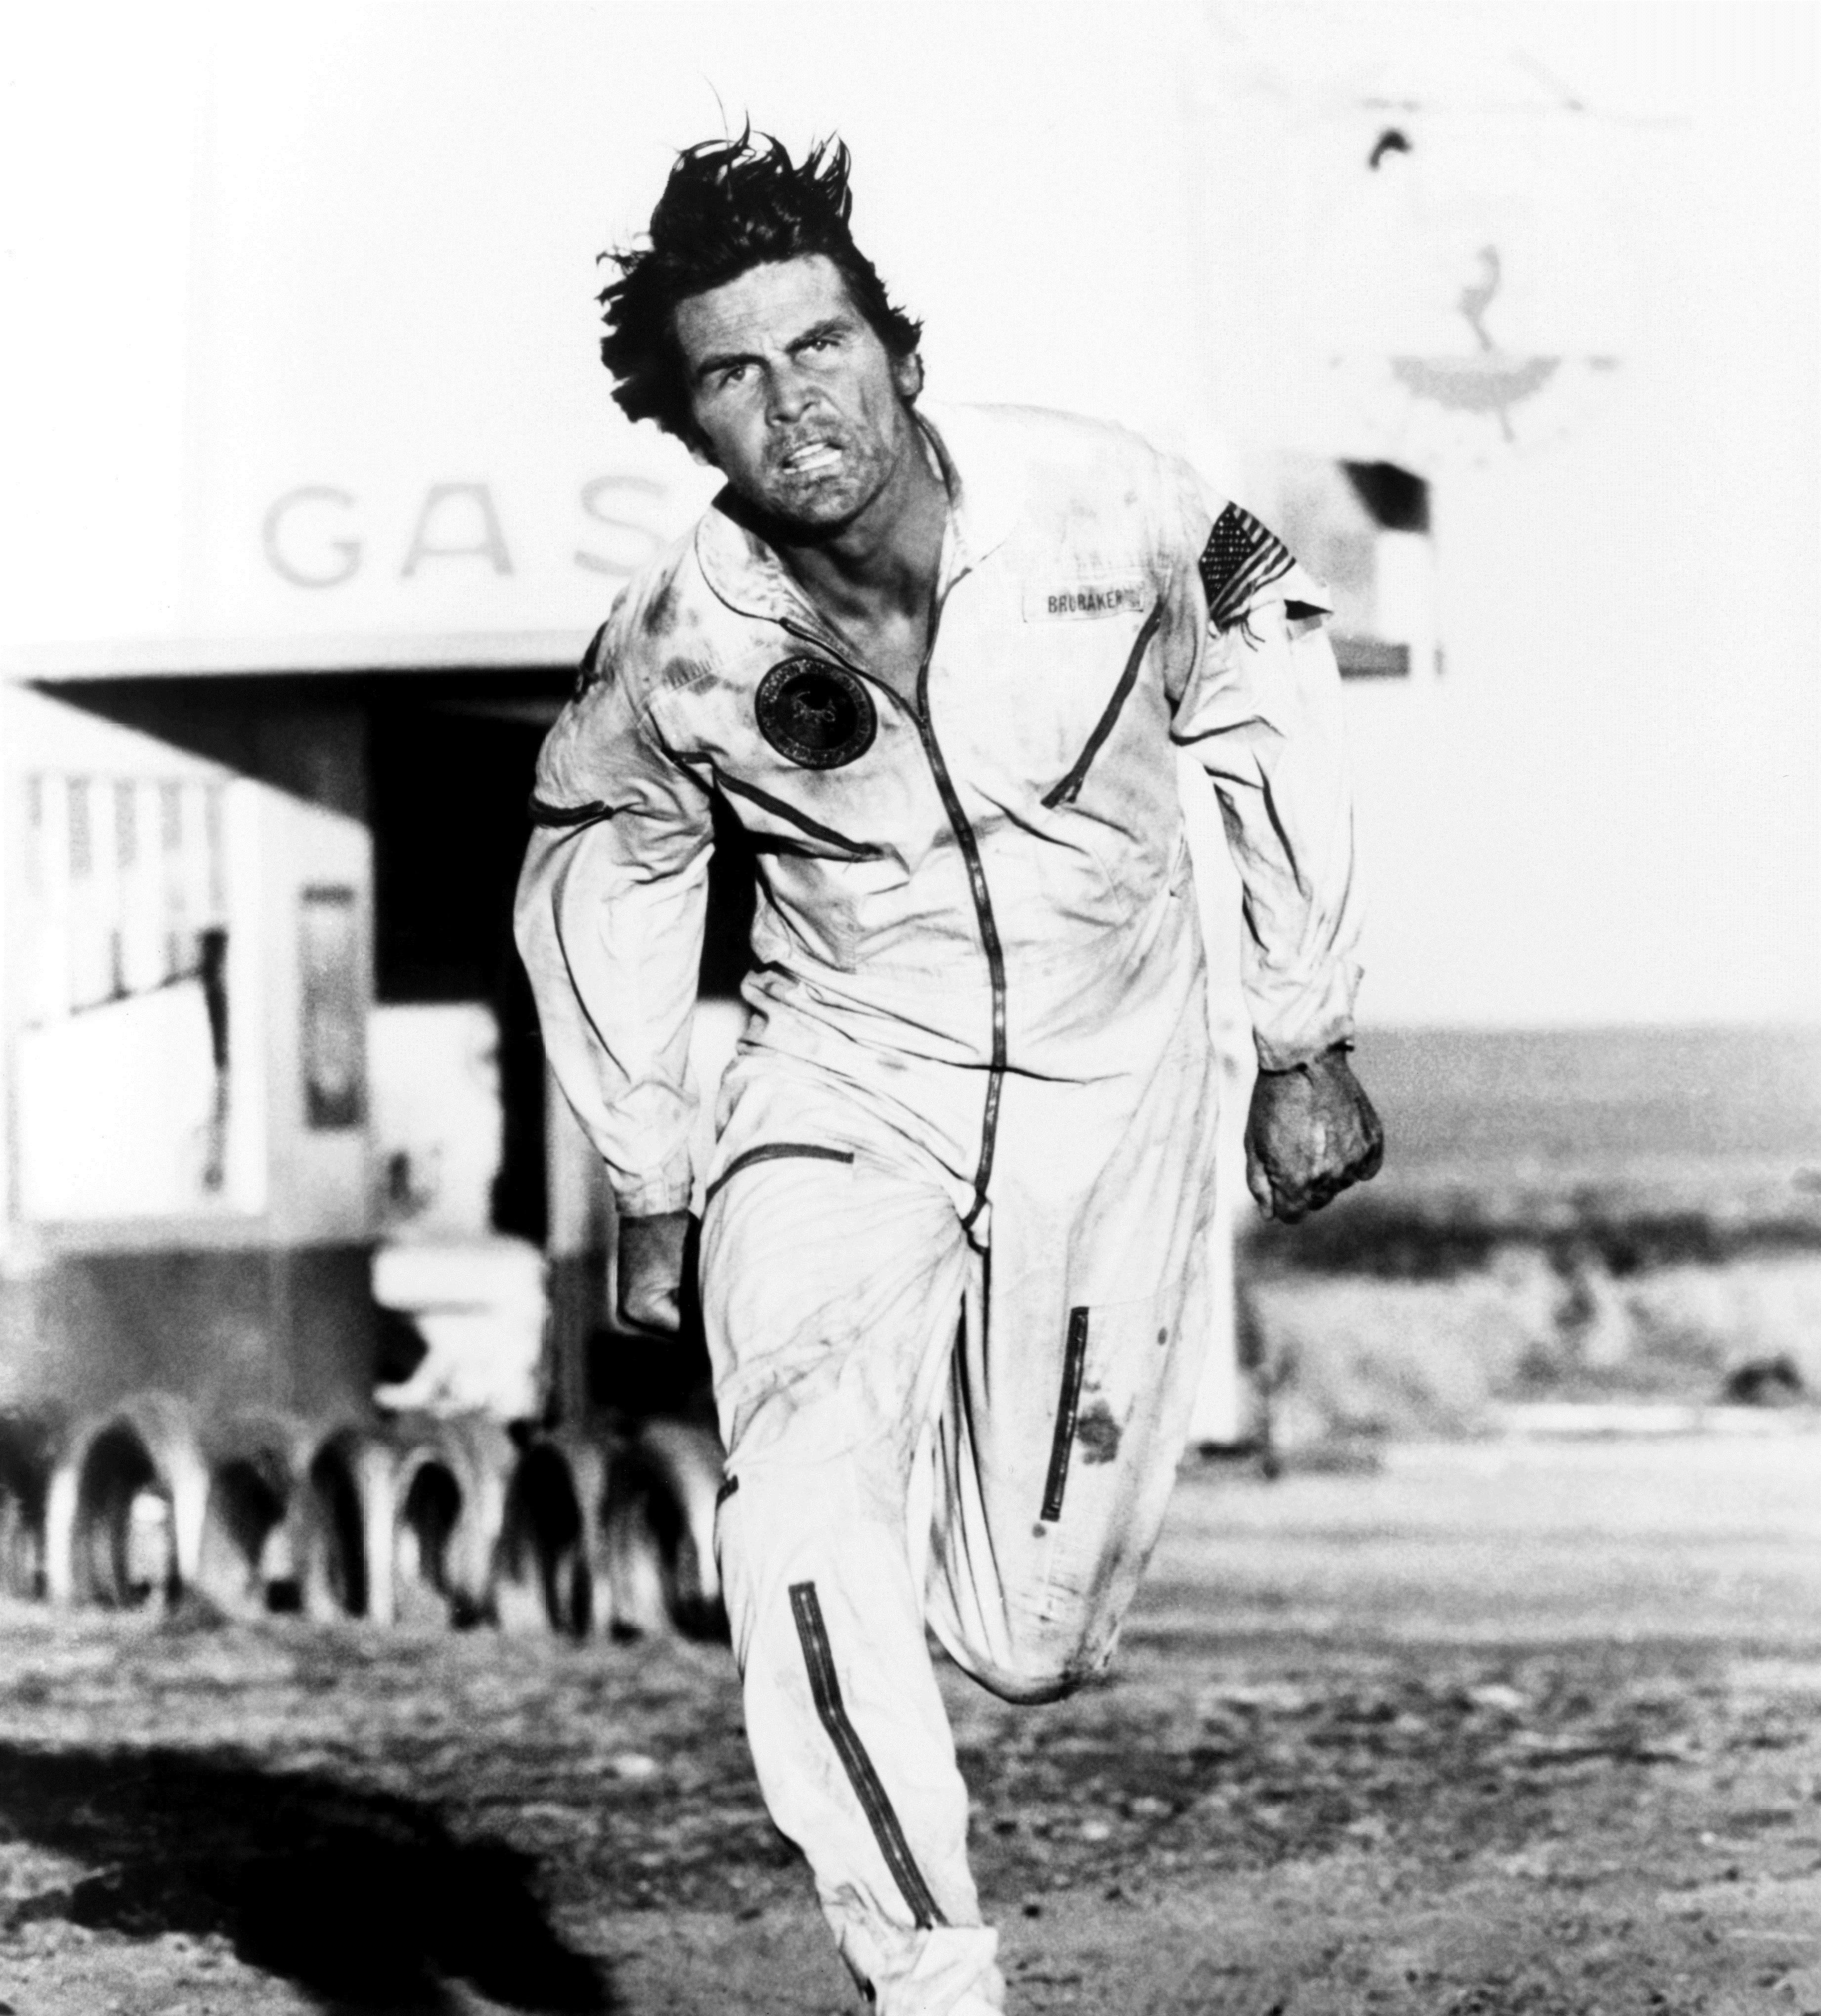 1560784153560_capricorn_one2.jpg - L'attore James Brolin in una scena di Capricorn One, 1978